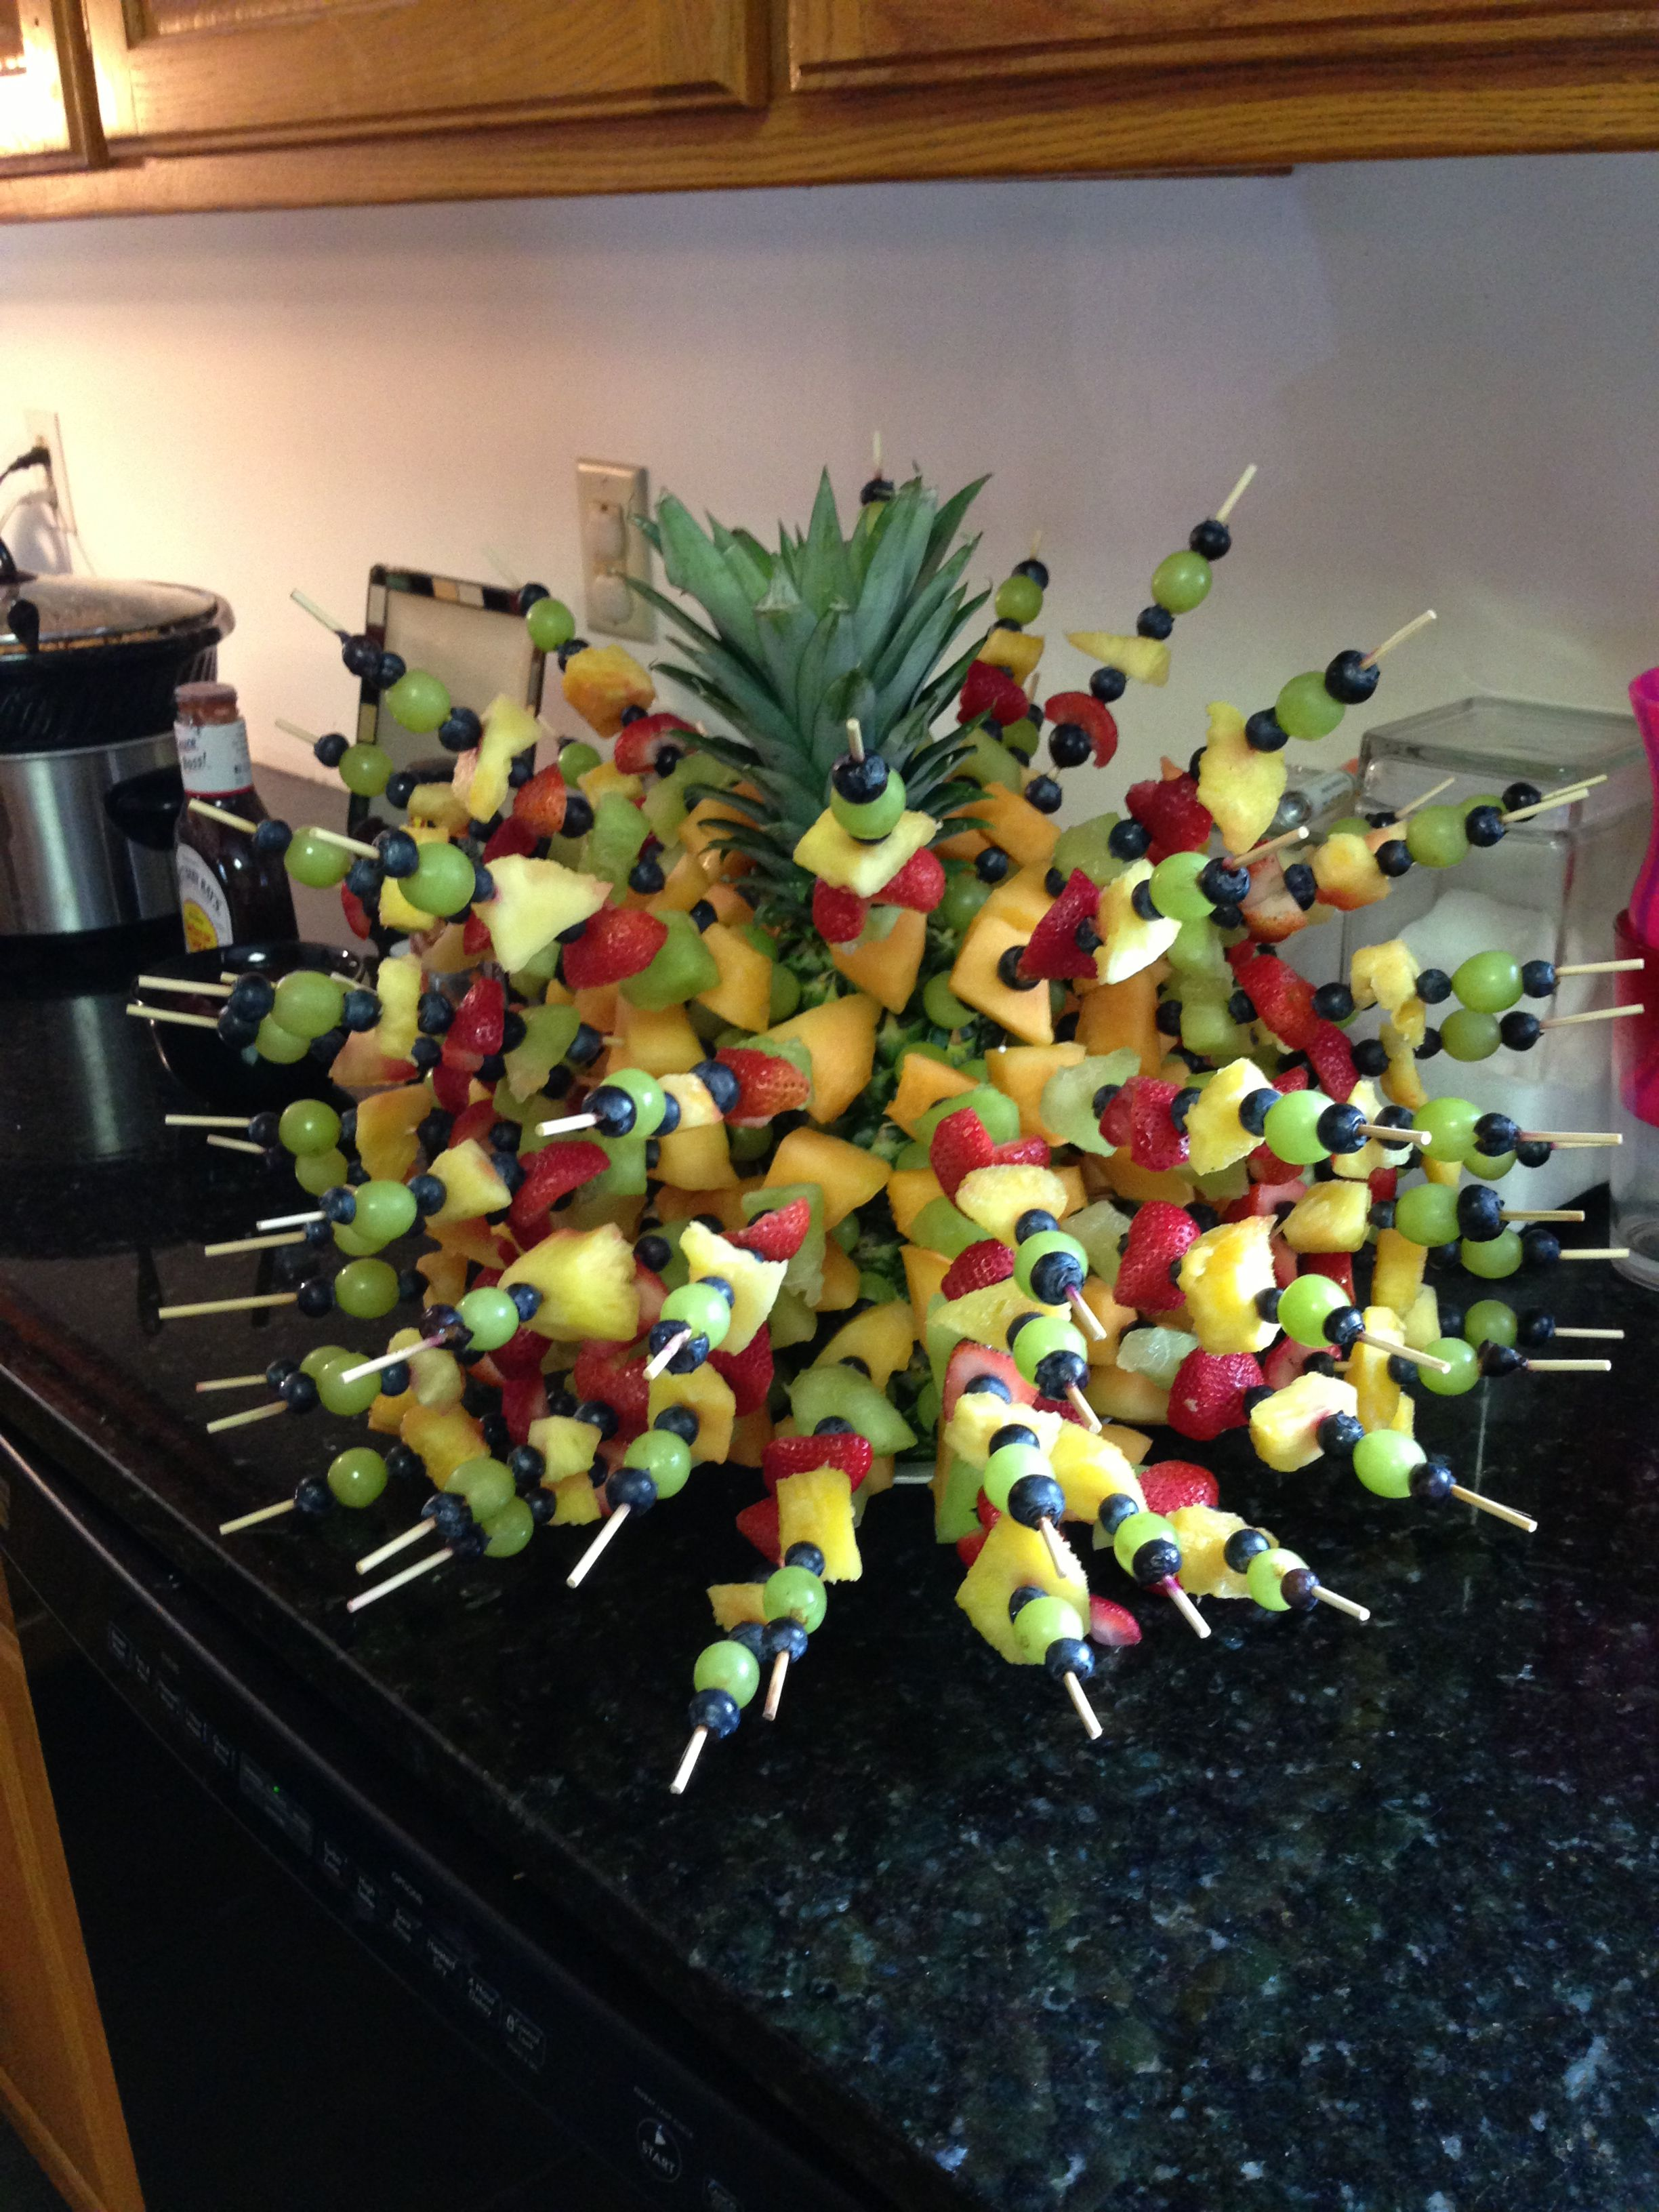 Whole Pineapple With Skewers Of Fruit Saw This At Another